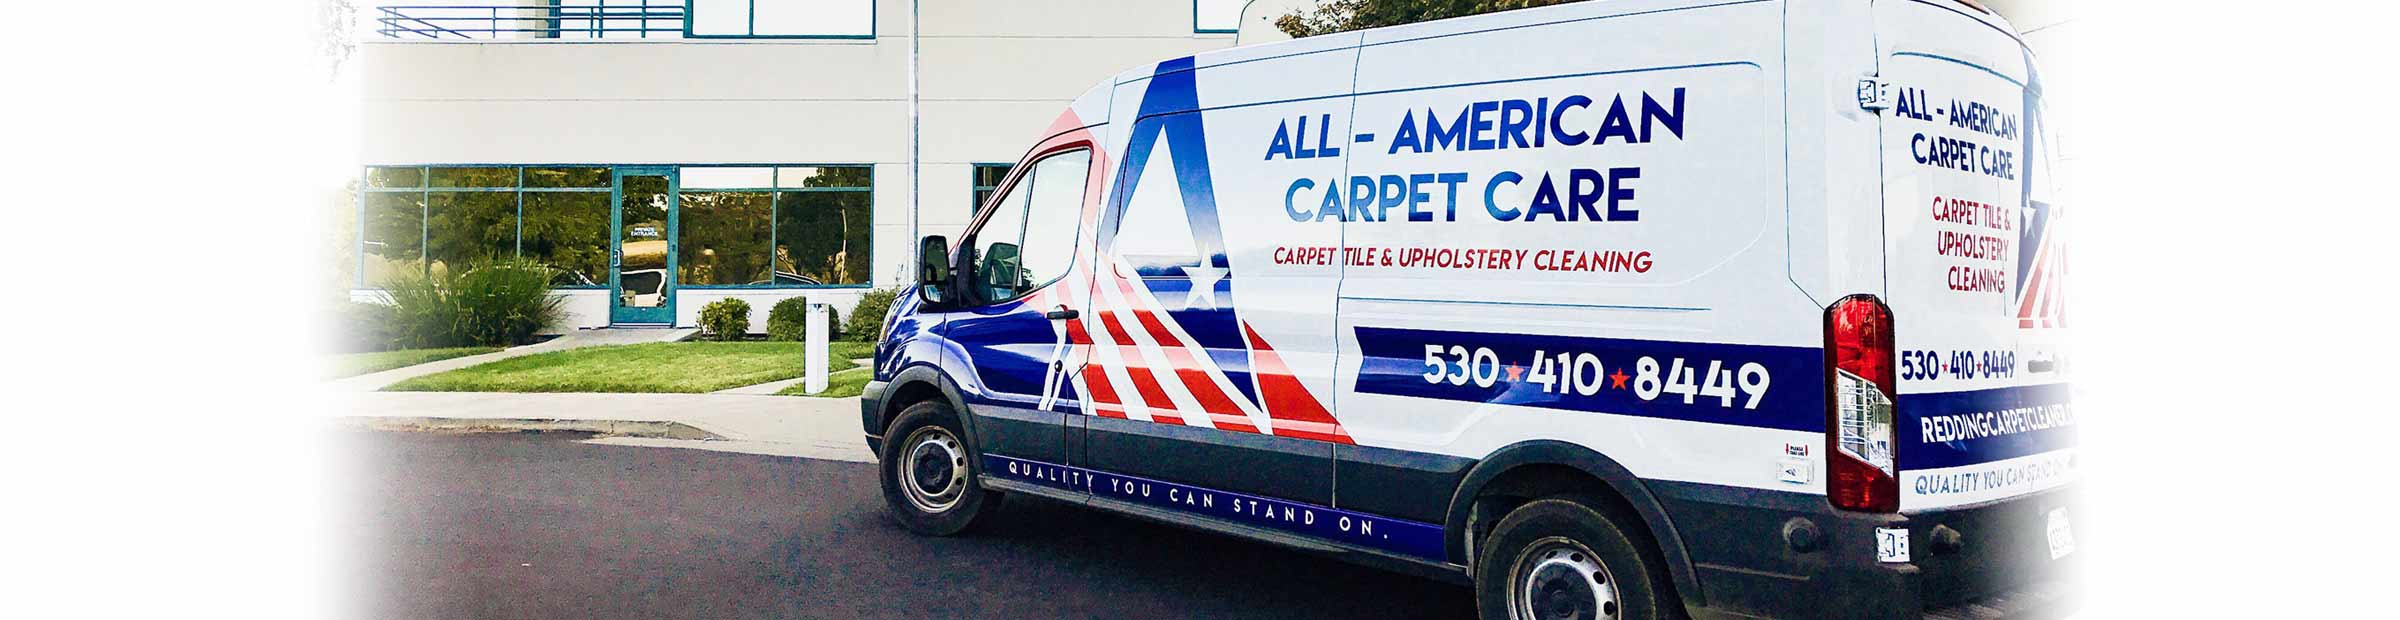 All-American Carpet Care